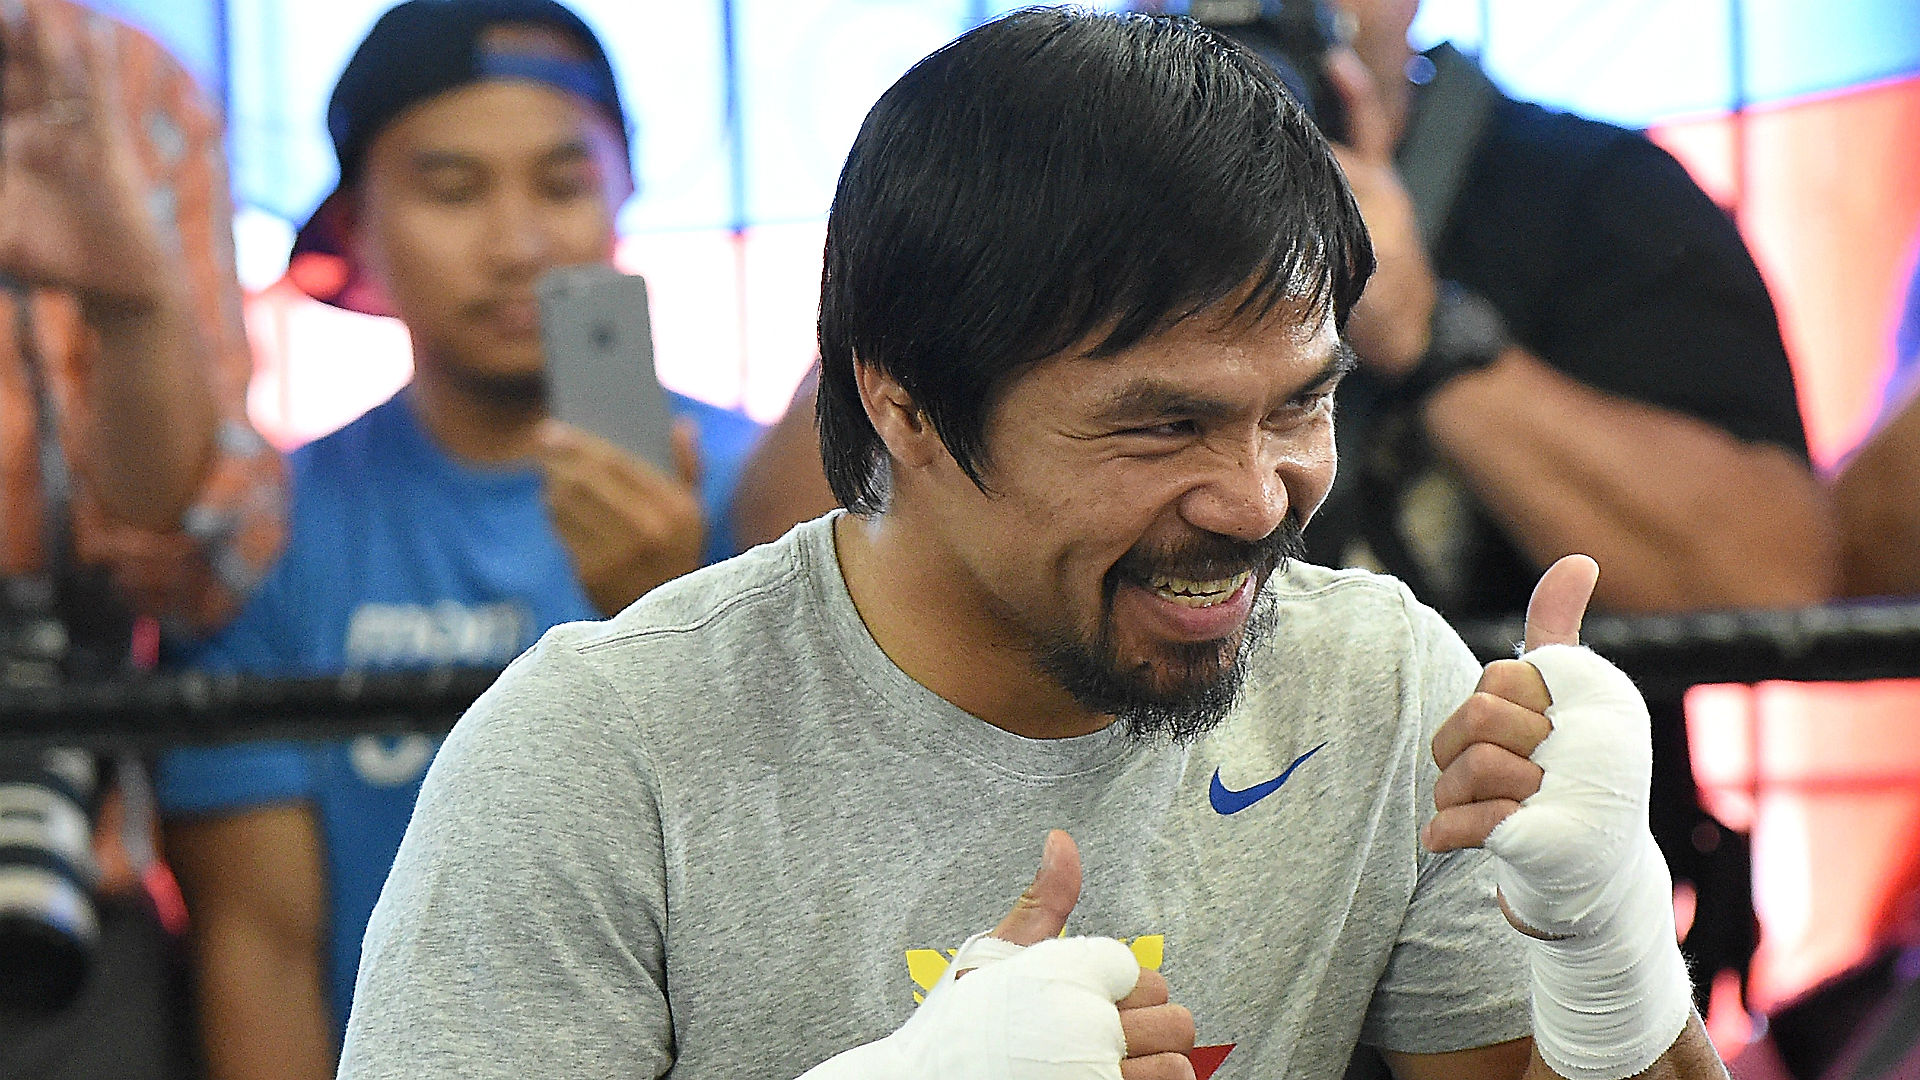 Bookmakers get creative with Mayweather vs. Pacquiao props